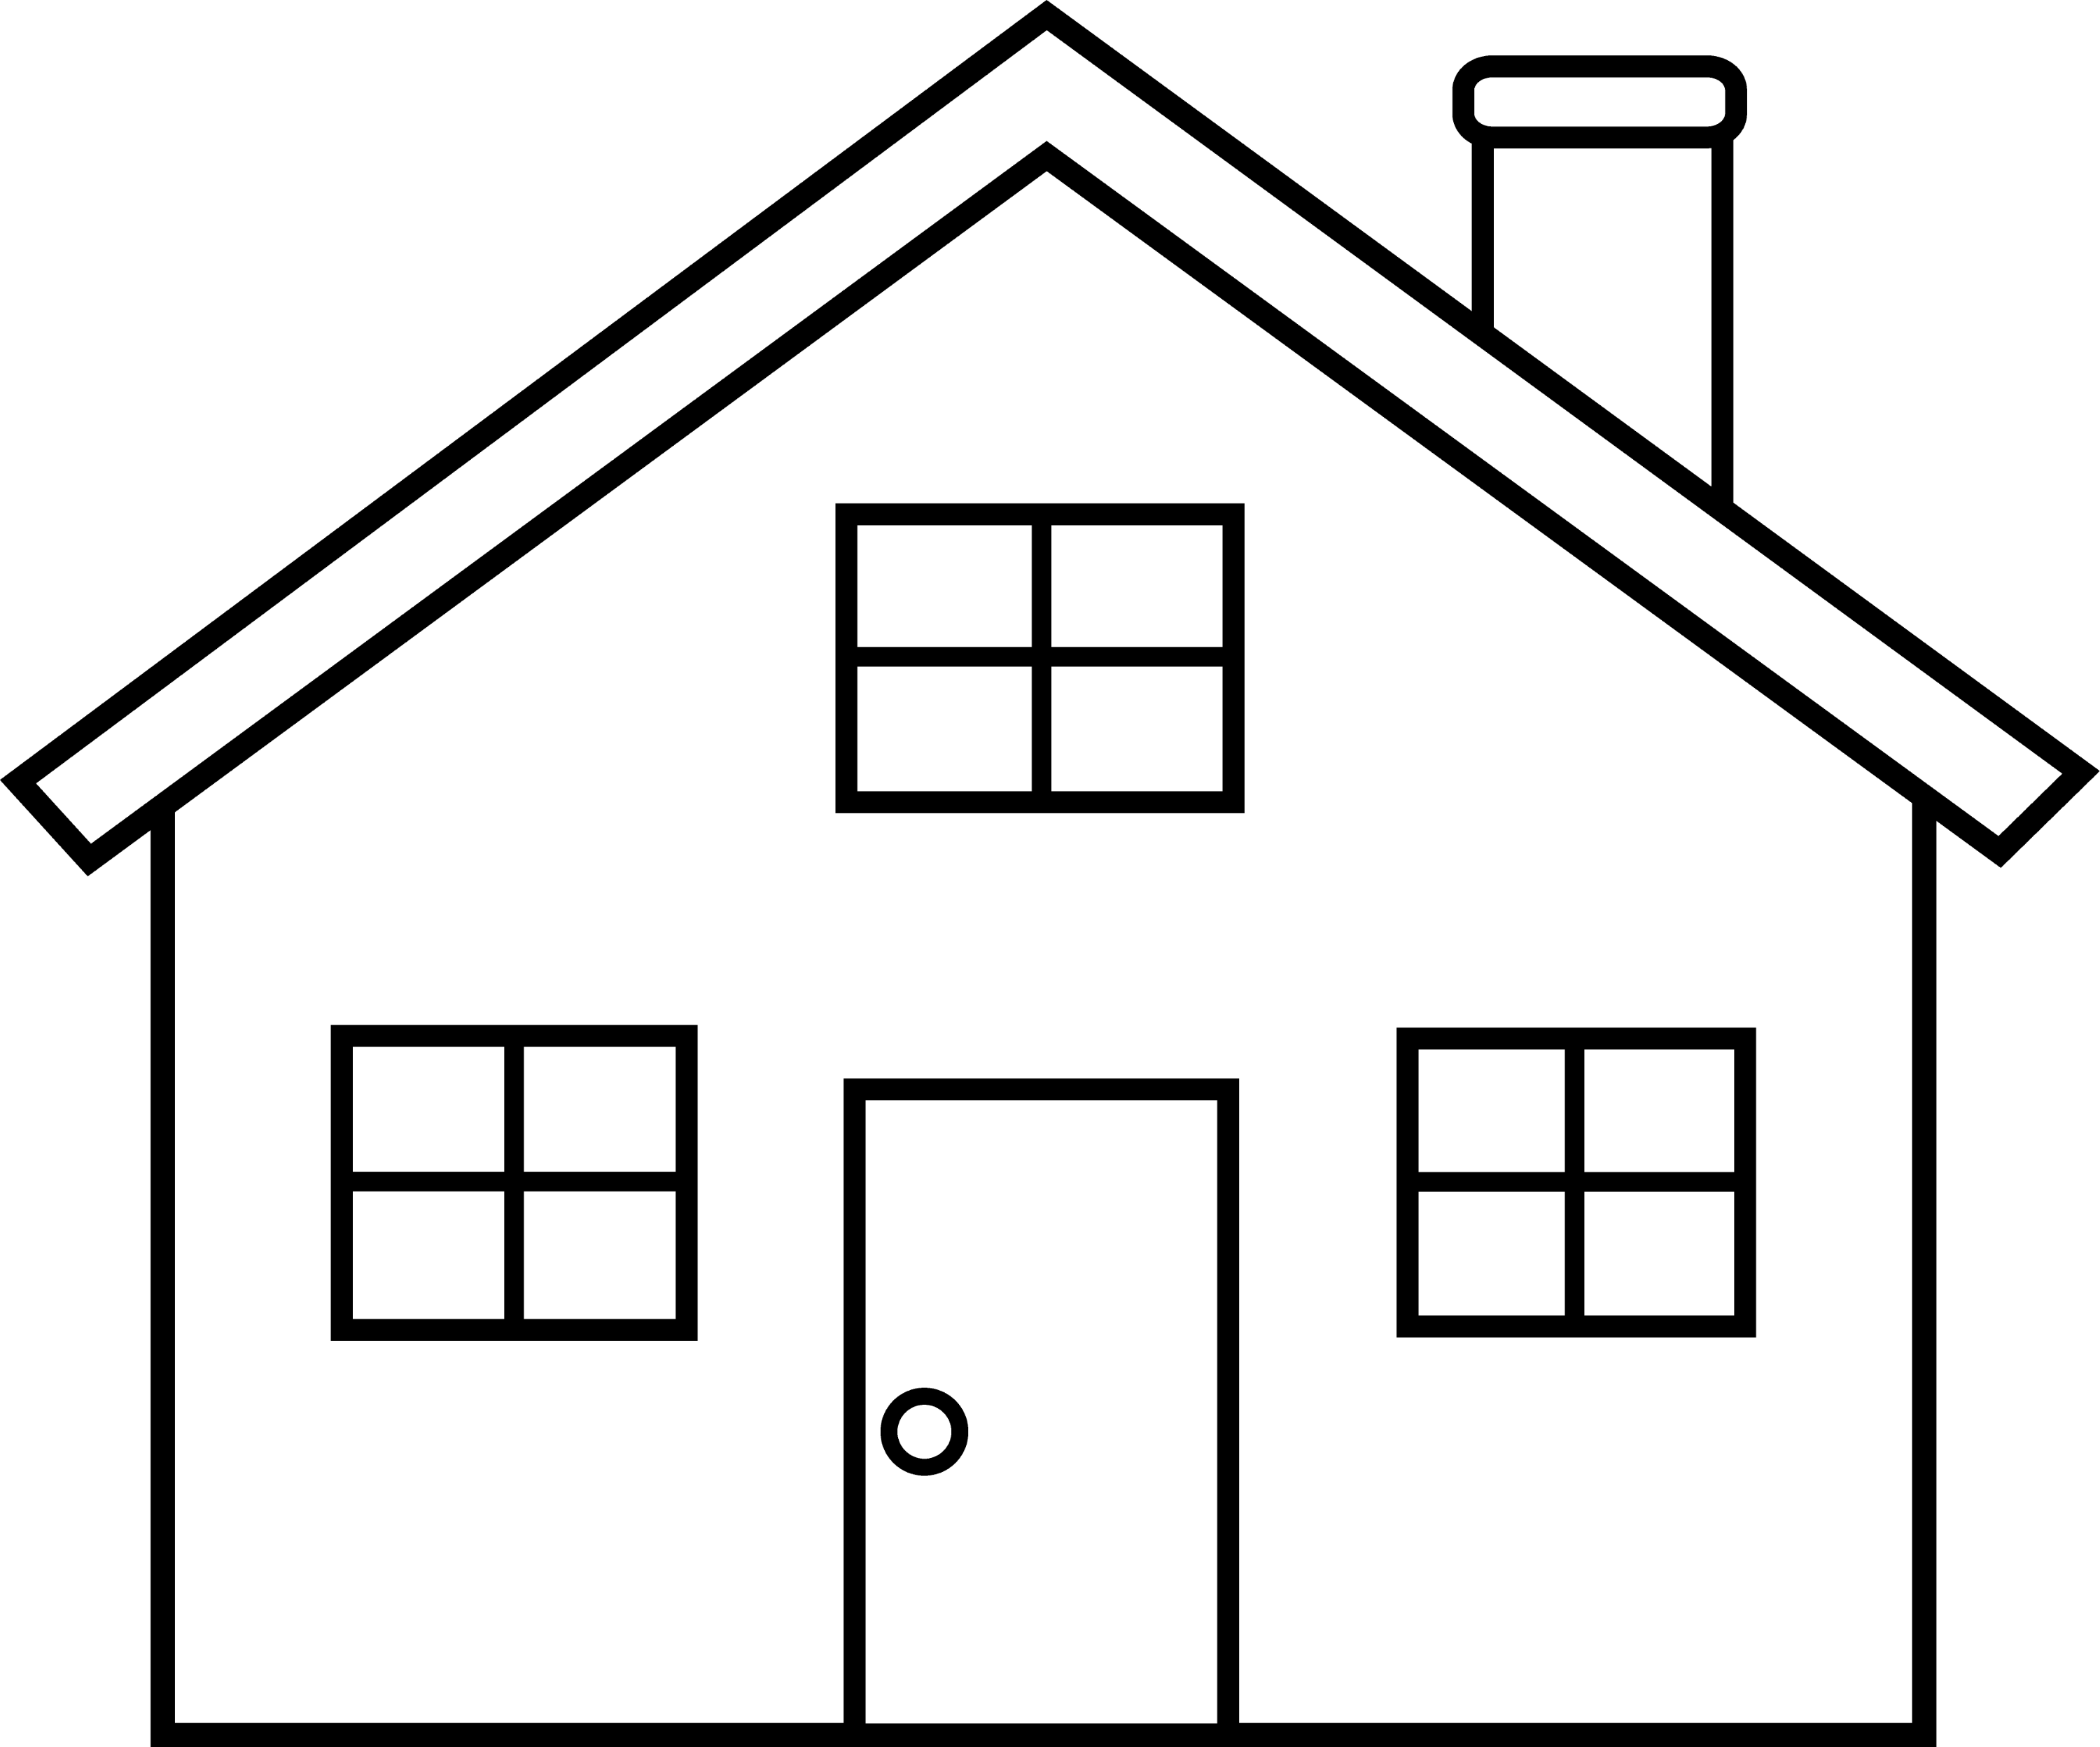 home coloring image free printable house coloring pages for kids coloring image home